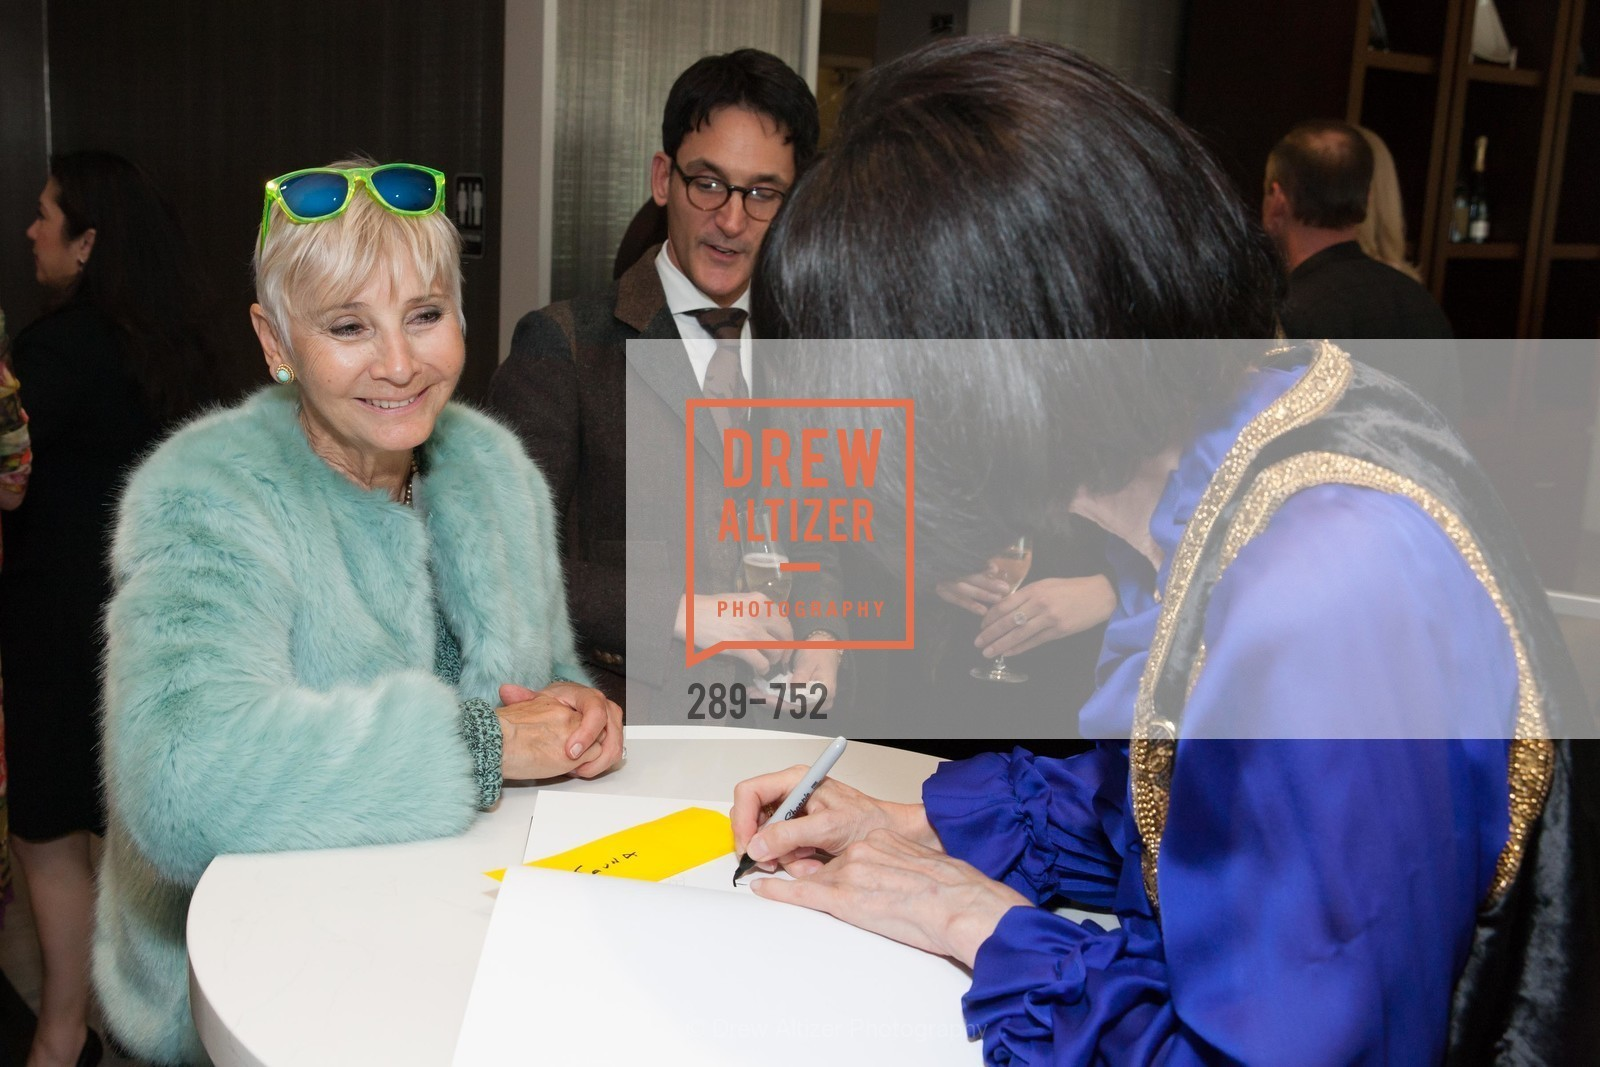 Gail Glasser, Electric Fashion Book Signing with Christine Suppes & Ken Downing at THE ROTUNDA, NEIMAN MARCUS, US, May 27th, 2015,Drew Altizer, Drew Altizer Photography, full-service agency, private events, San Francisco photographer, photographer california